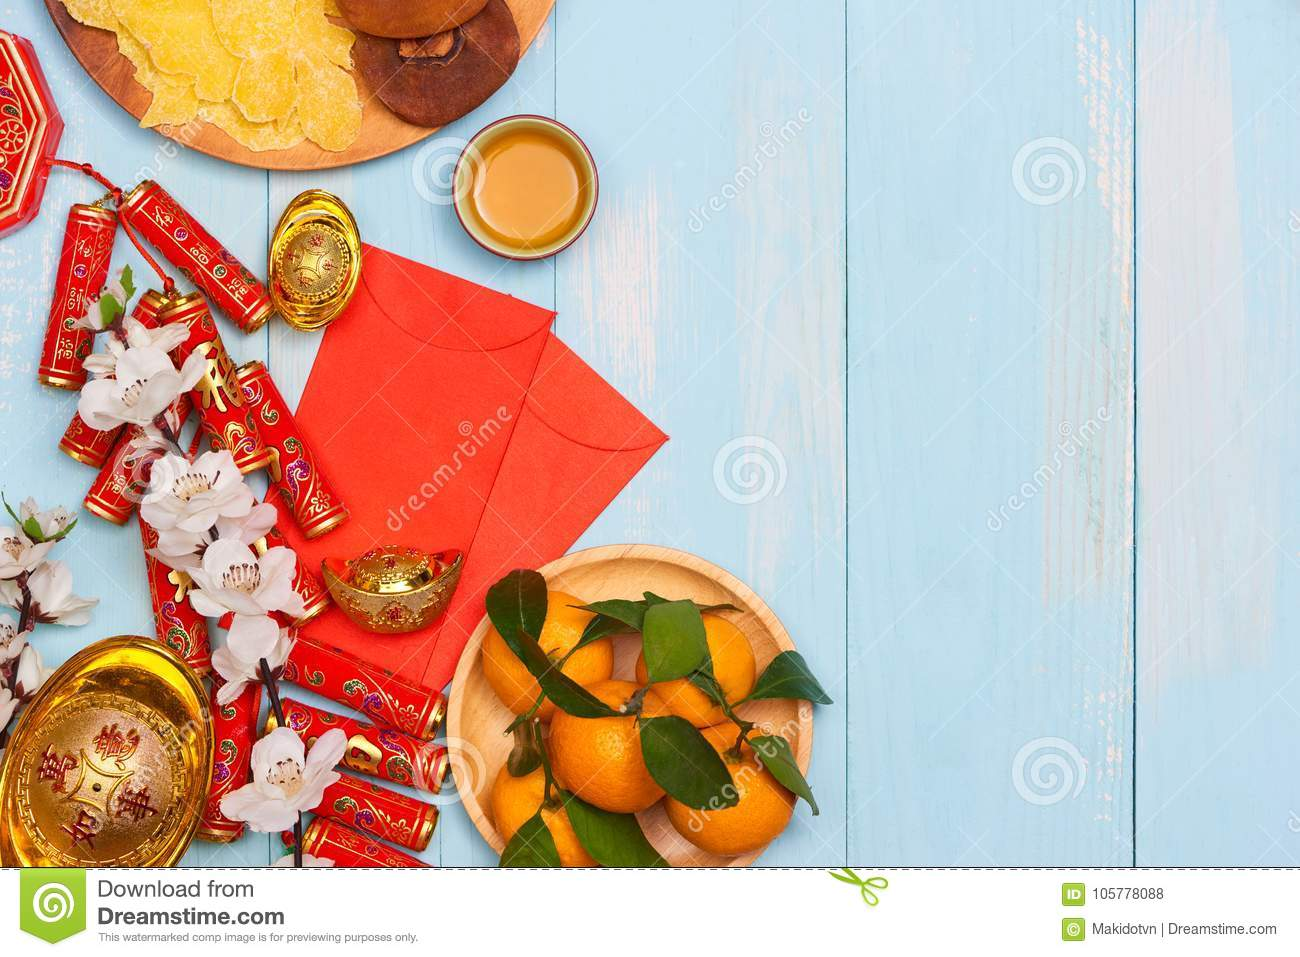 Lunar New Year.Firecrackers And Chinese Gold Ingots And ...